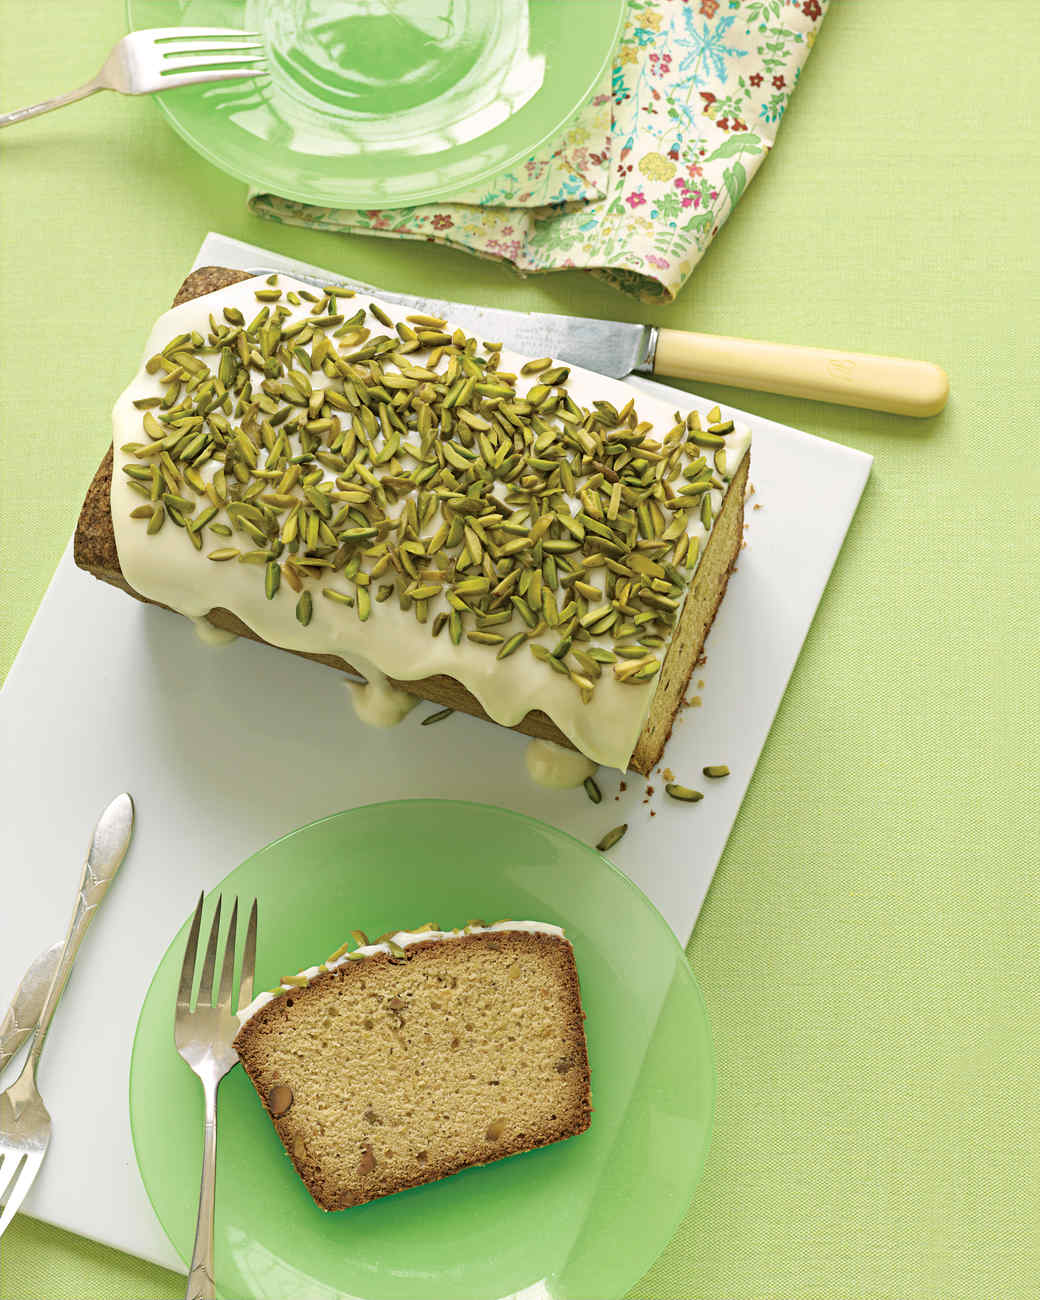 Pistachio Pound Cake with Drippy Icing